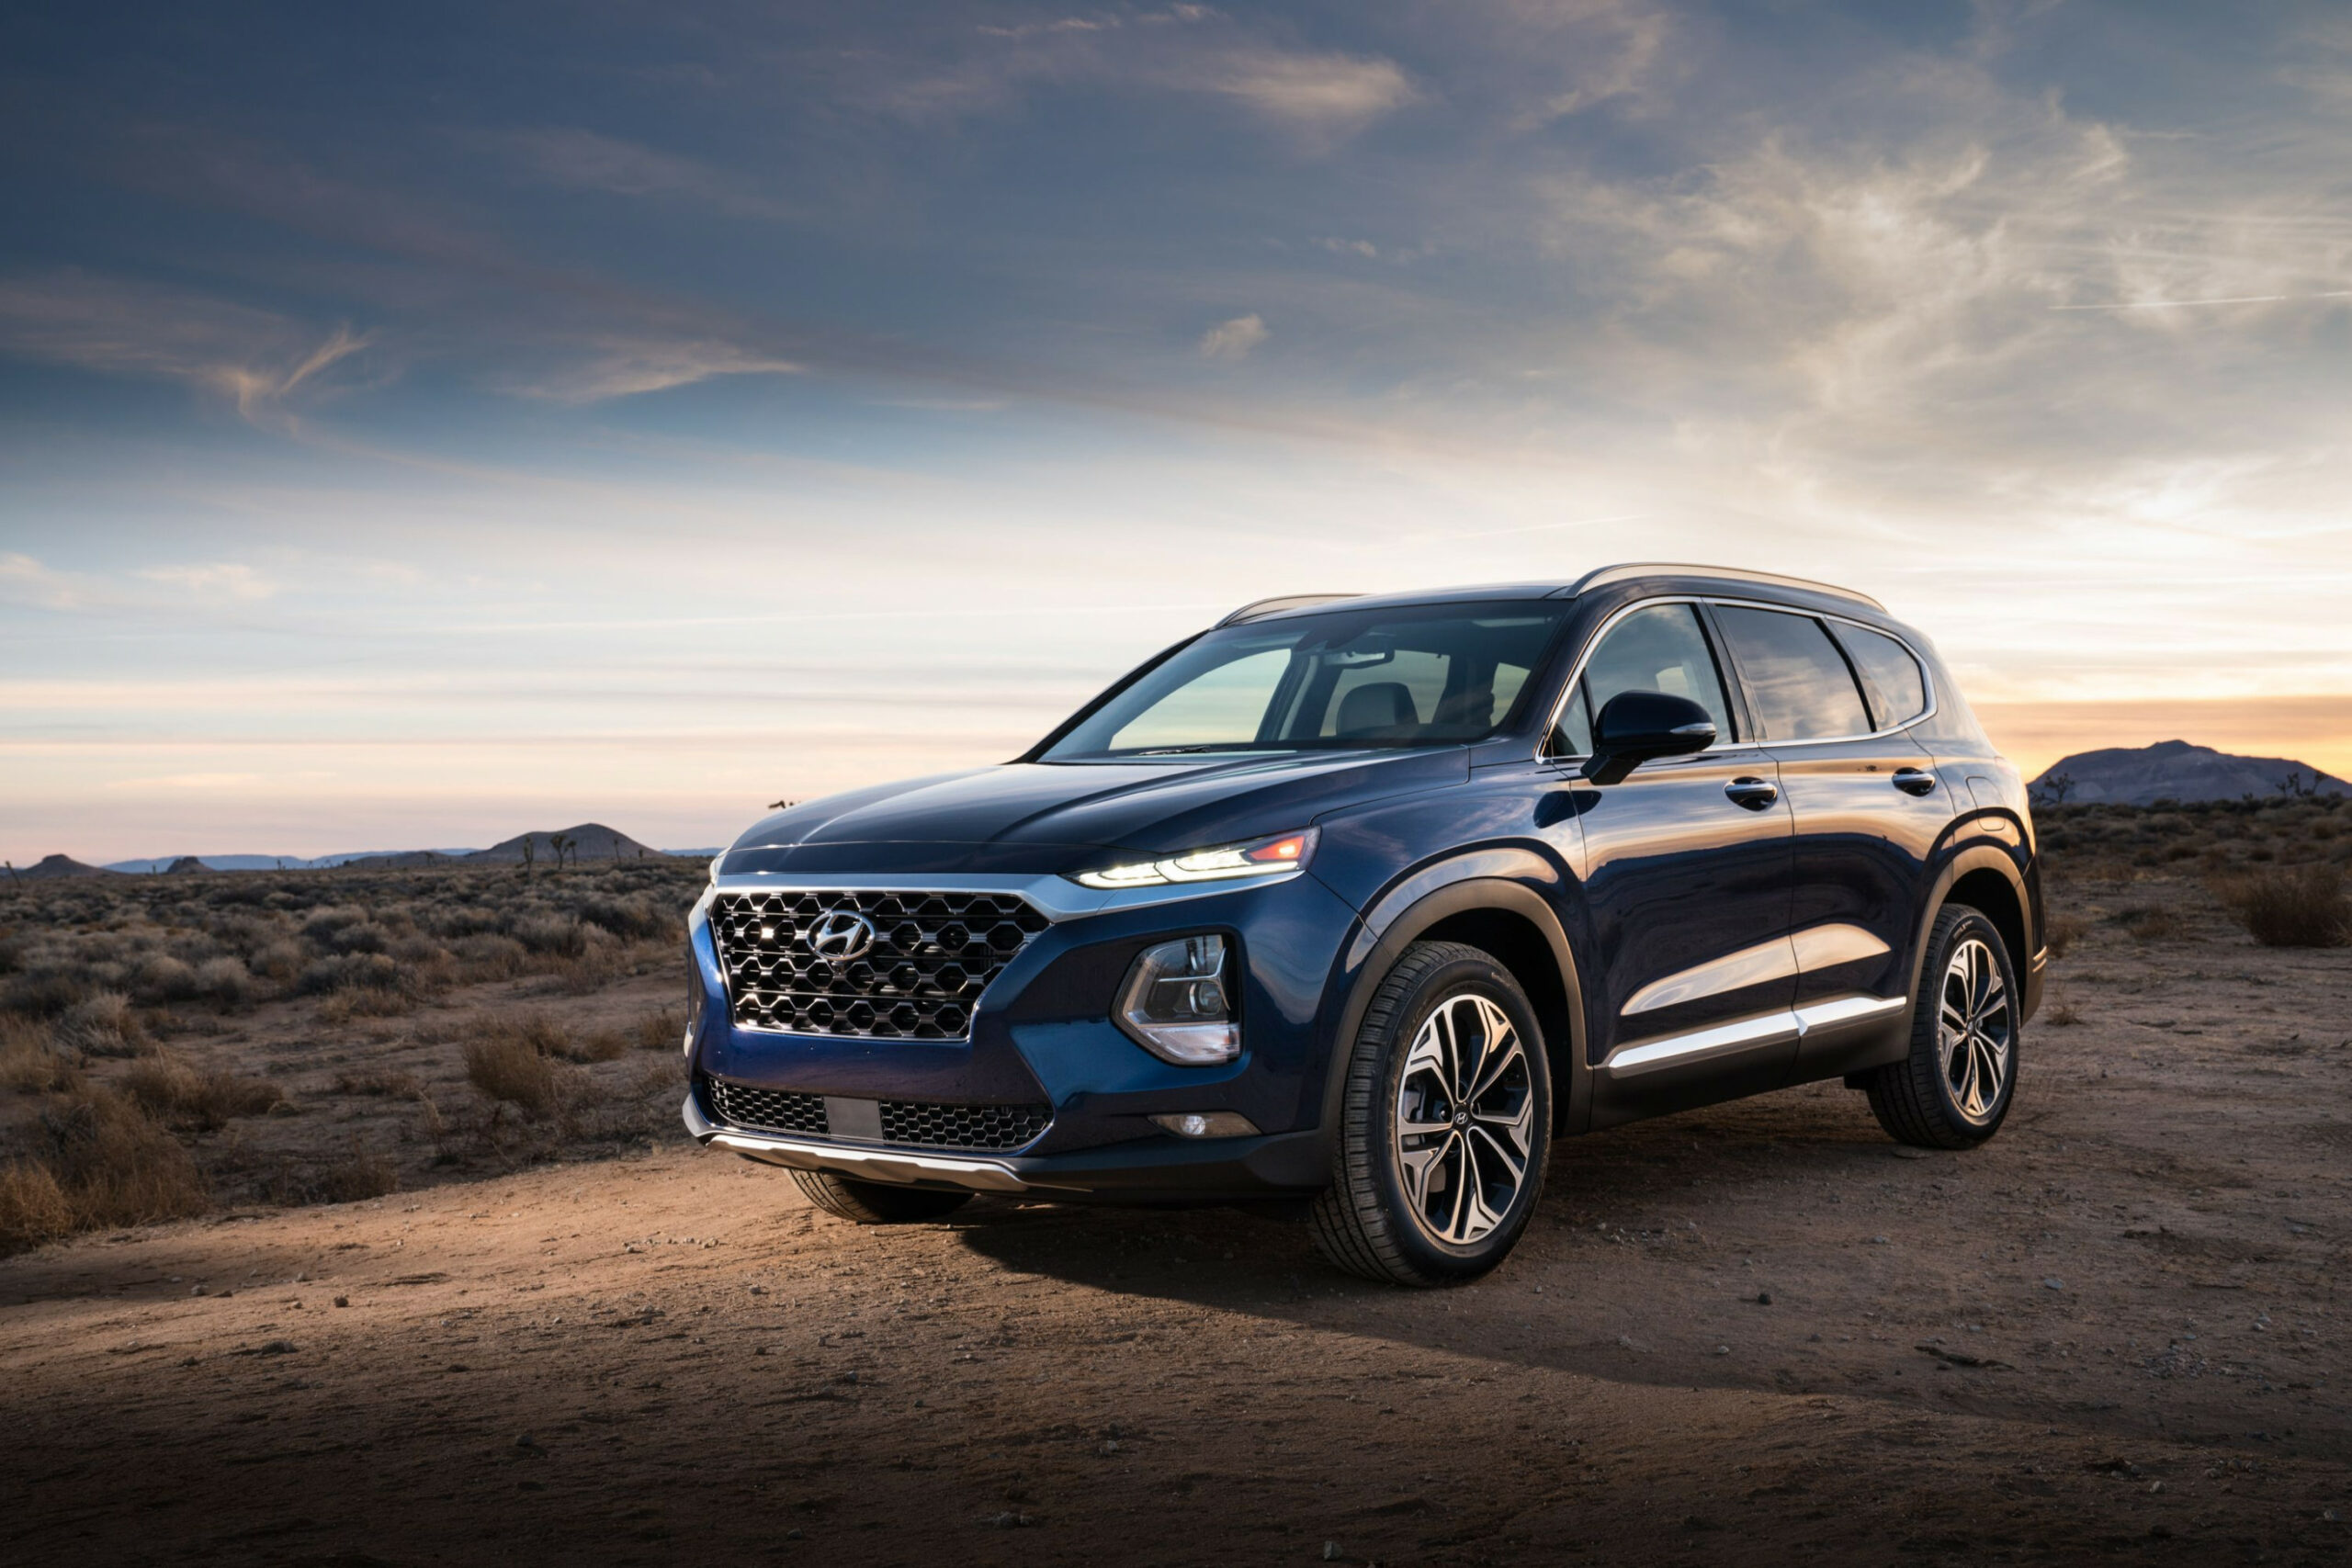 8 Hyundai Santa Fe Review, Pricing, and Specs